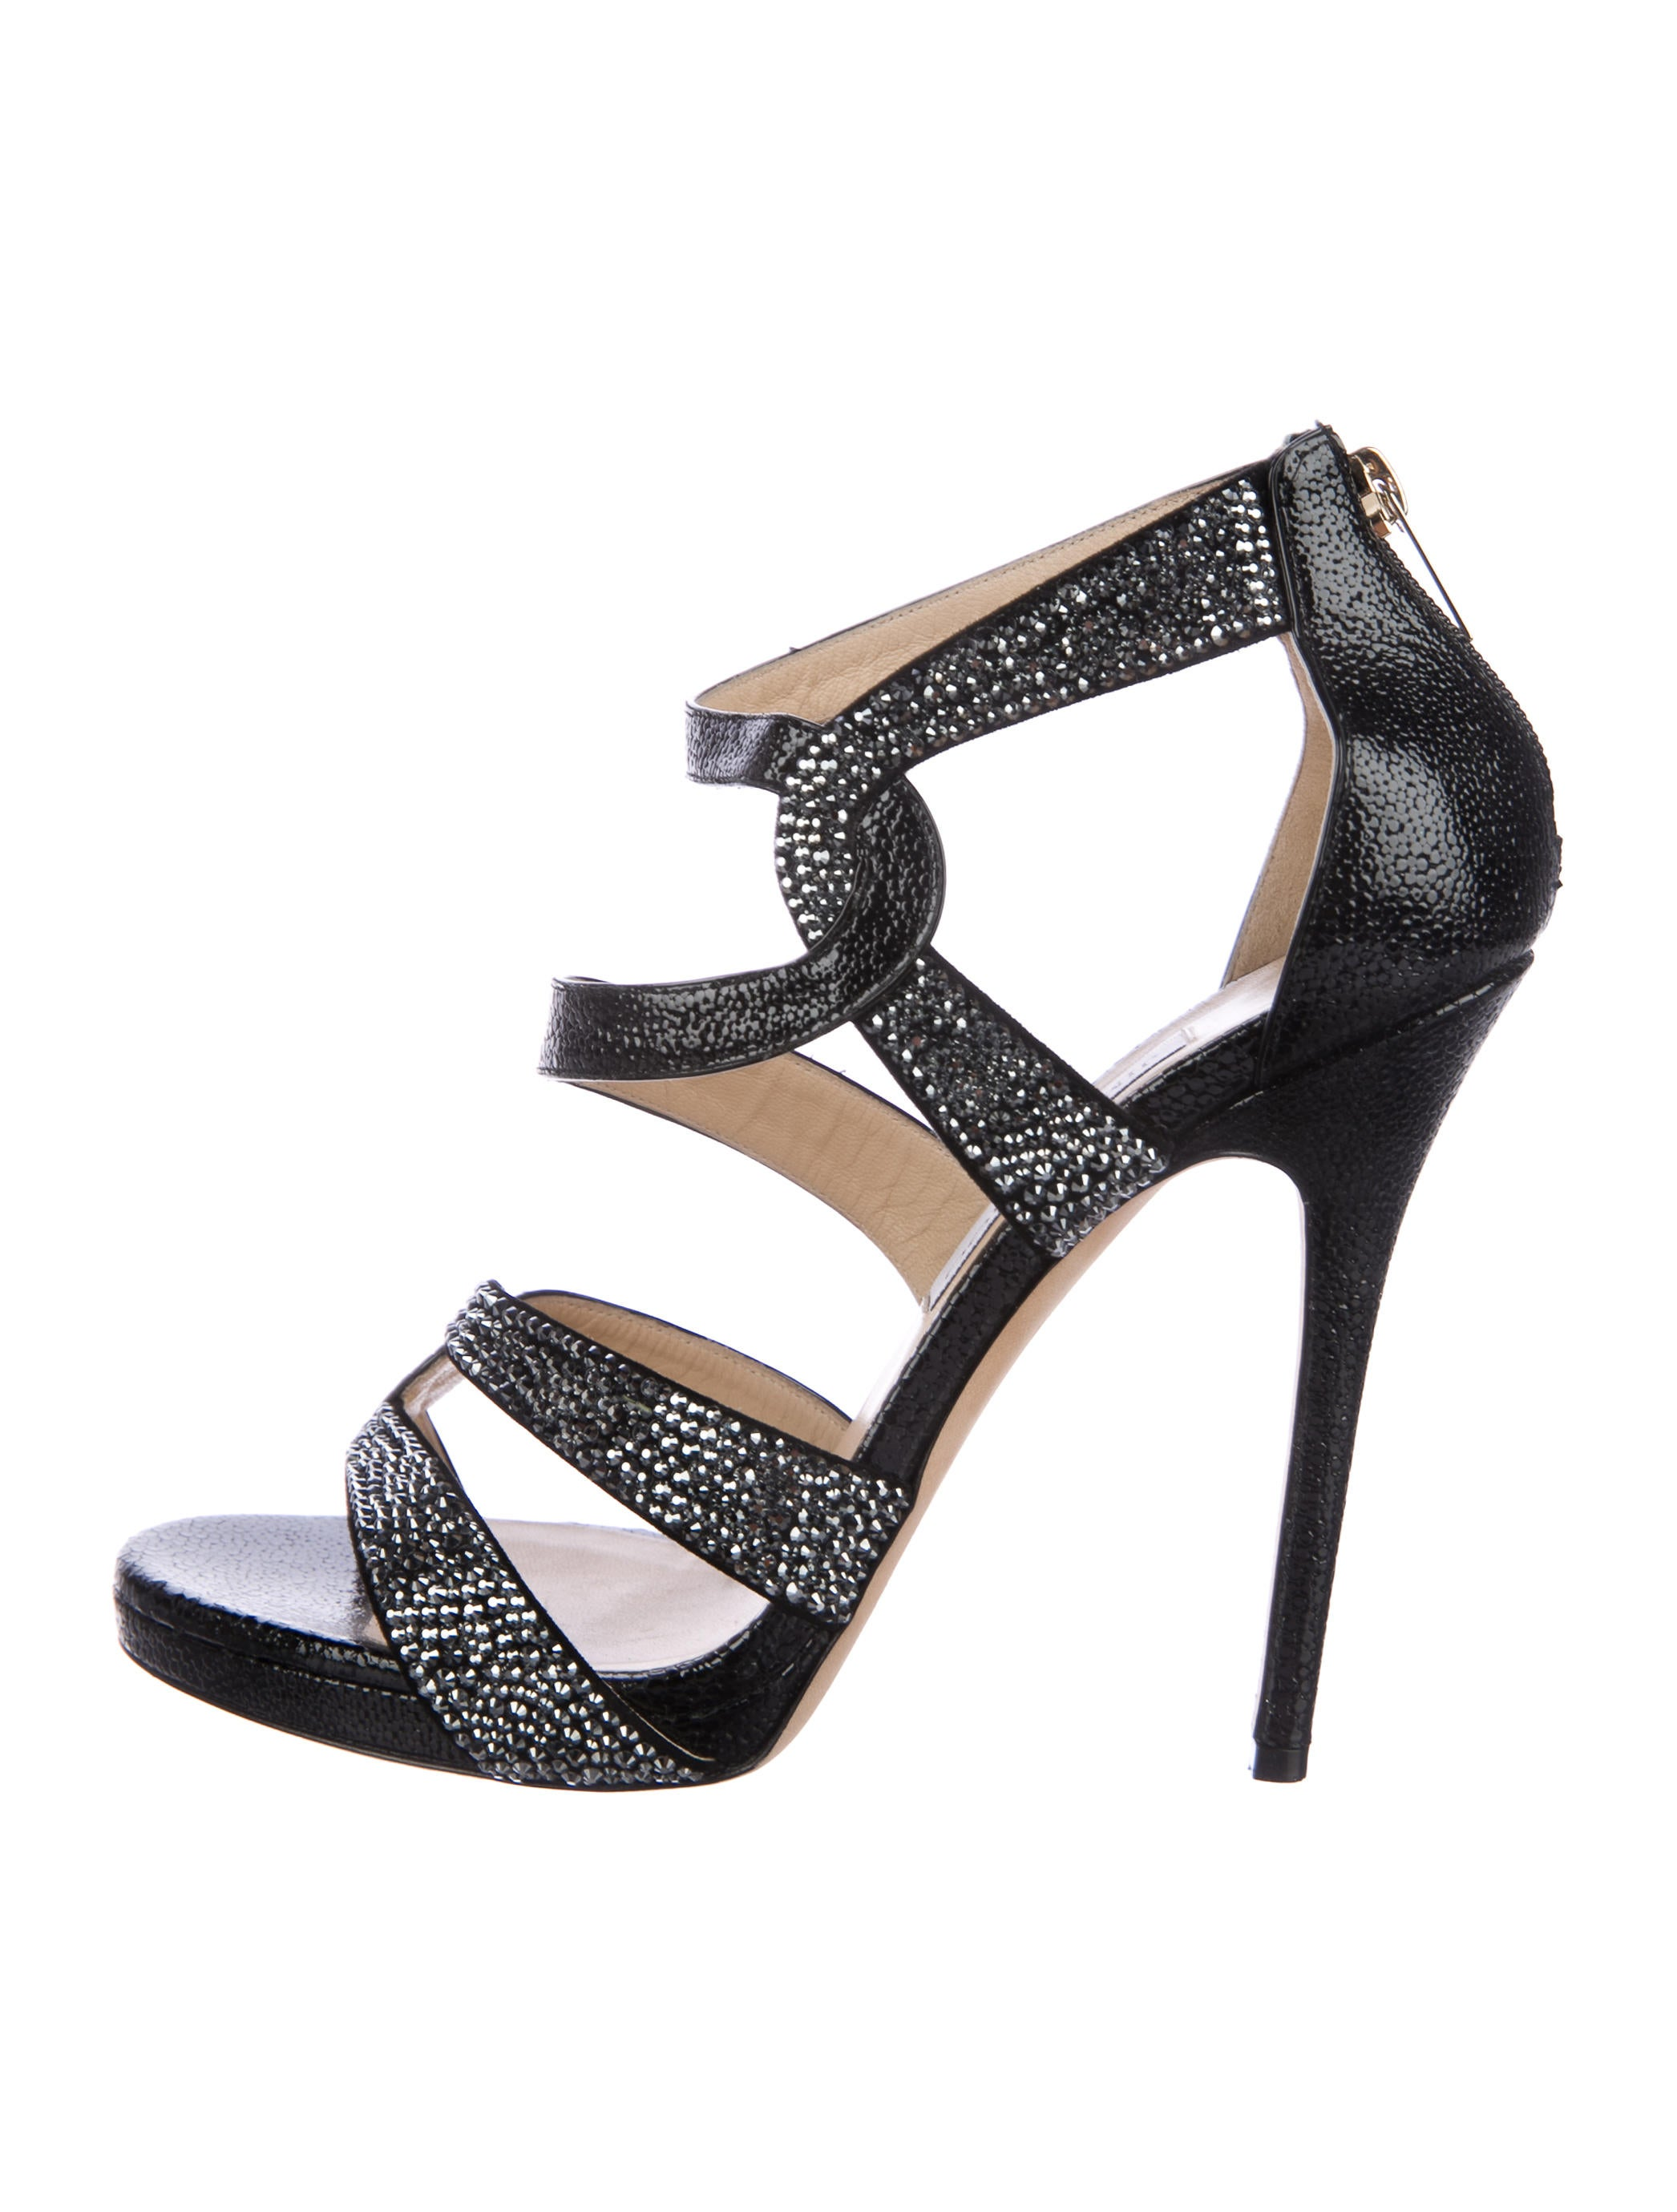 Jimmy Choo Taint Embellished Sandals outlet fashion Style cheap sale new styles outlet cheapest price ZnnrgI0J